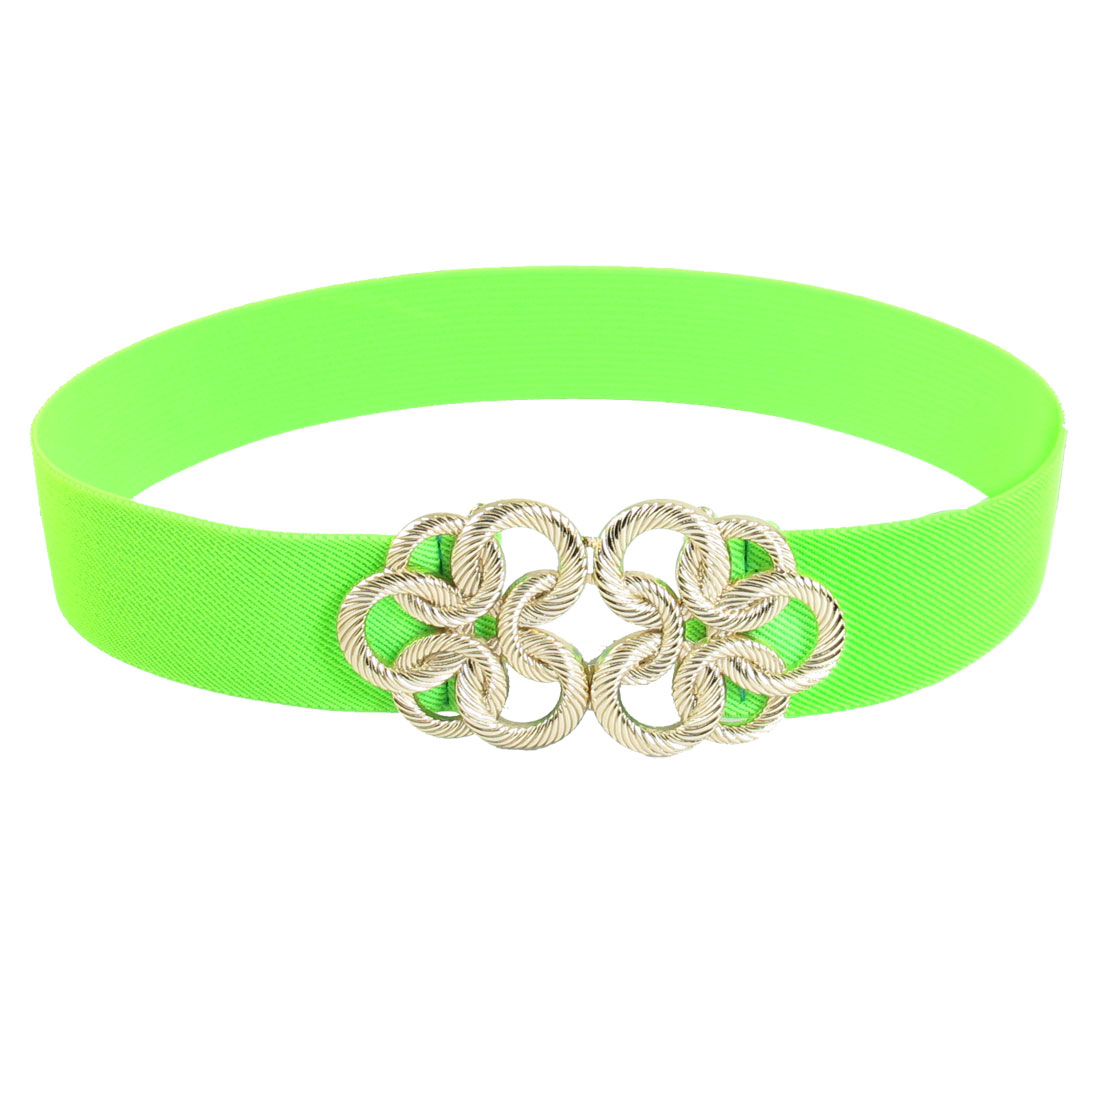 Metal Floral Interlocking Buckle Stretch Waist Belt Green for Ladies Woman